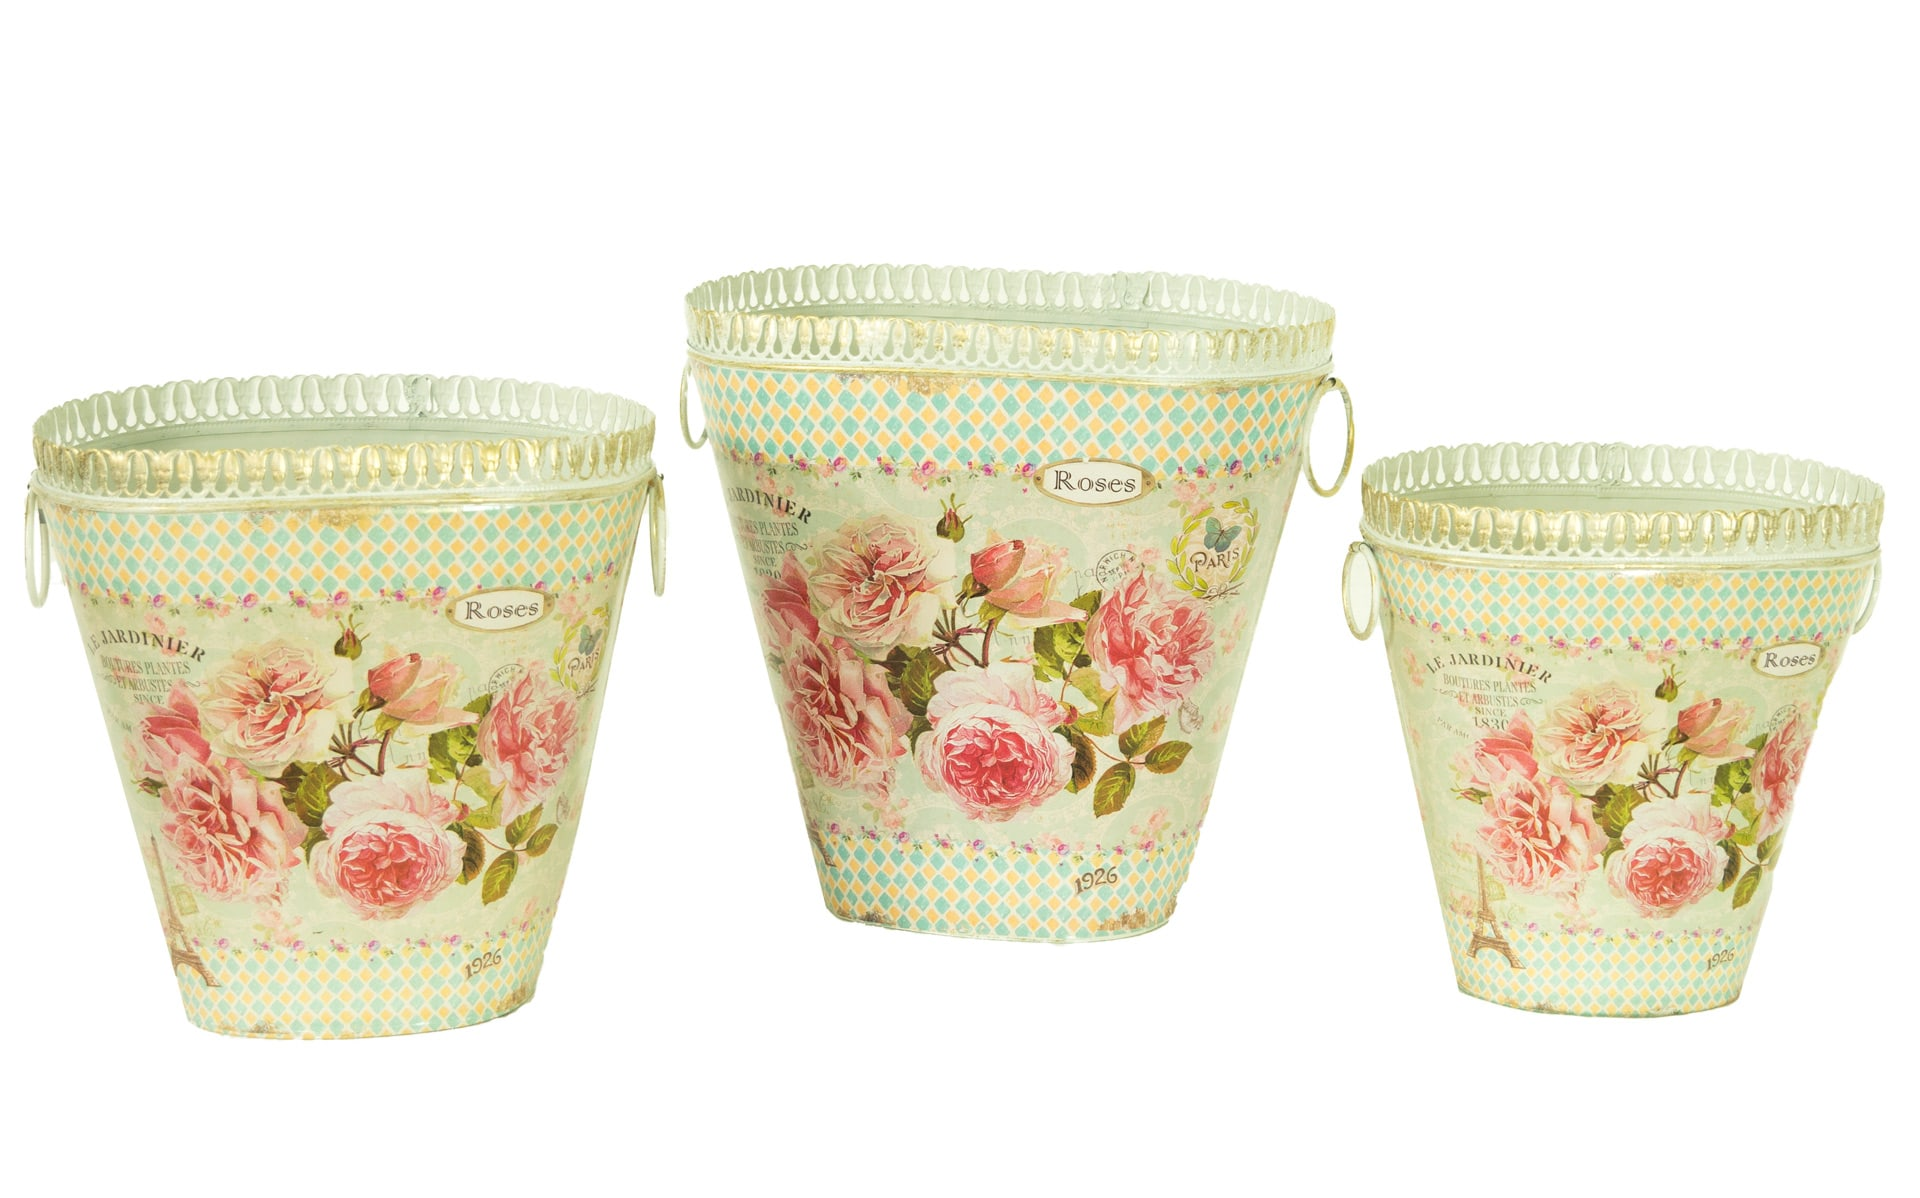 French Country Planters Vintage Metal Decorative Vases Flower Pots Set Of 3